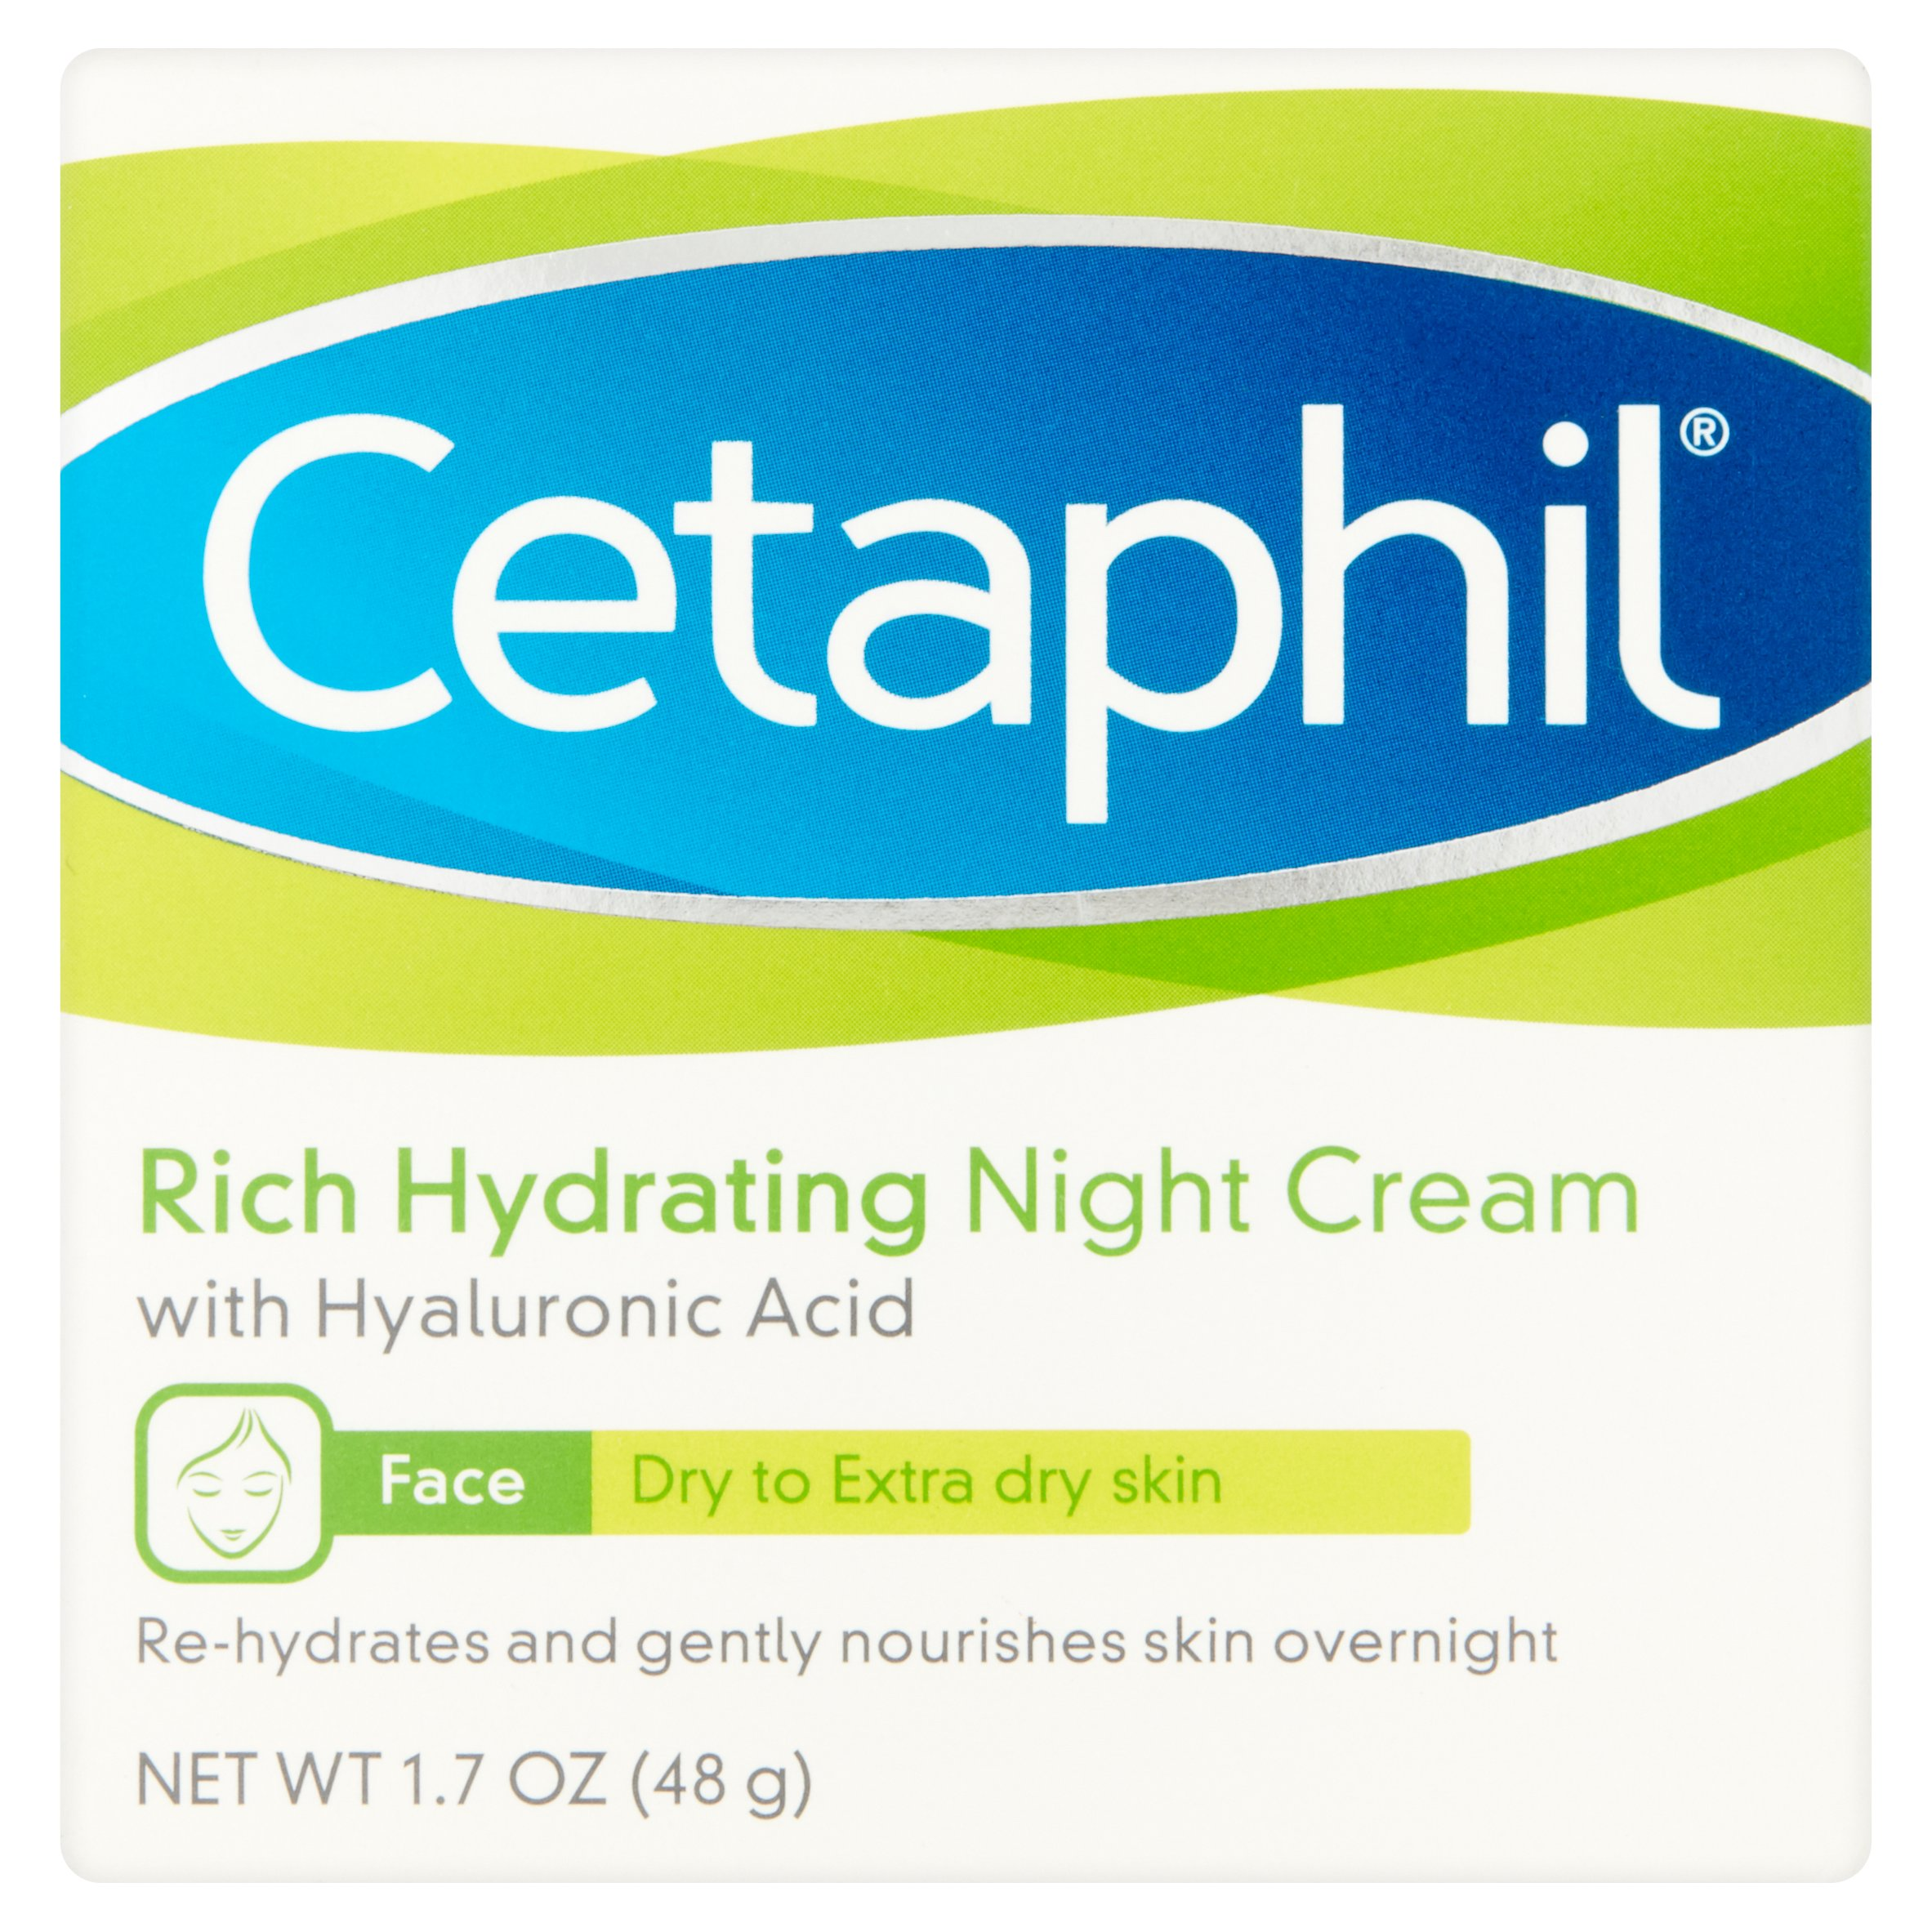 Cetaphil Rich Hydrating Night Cream, 1.7 oz